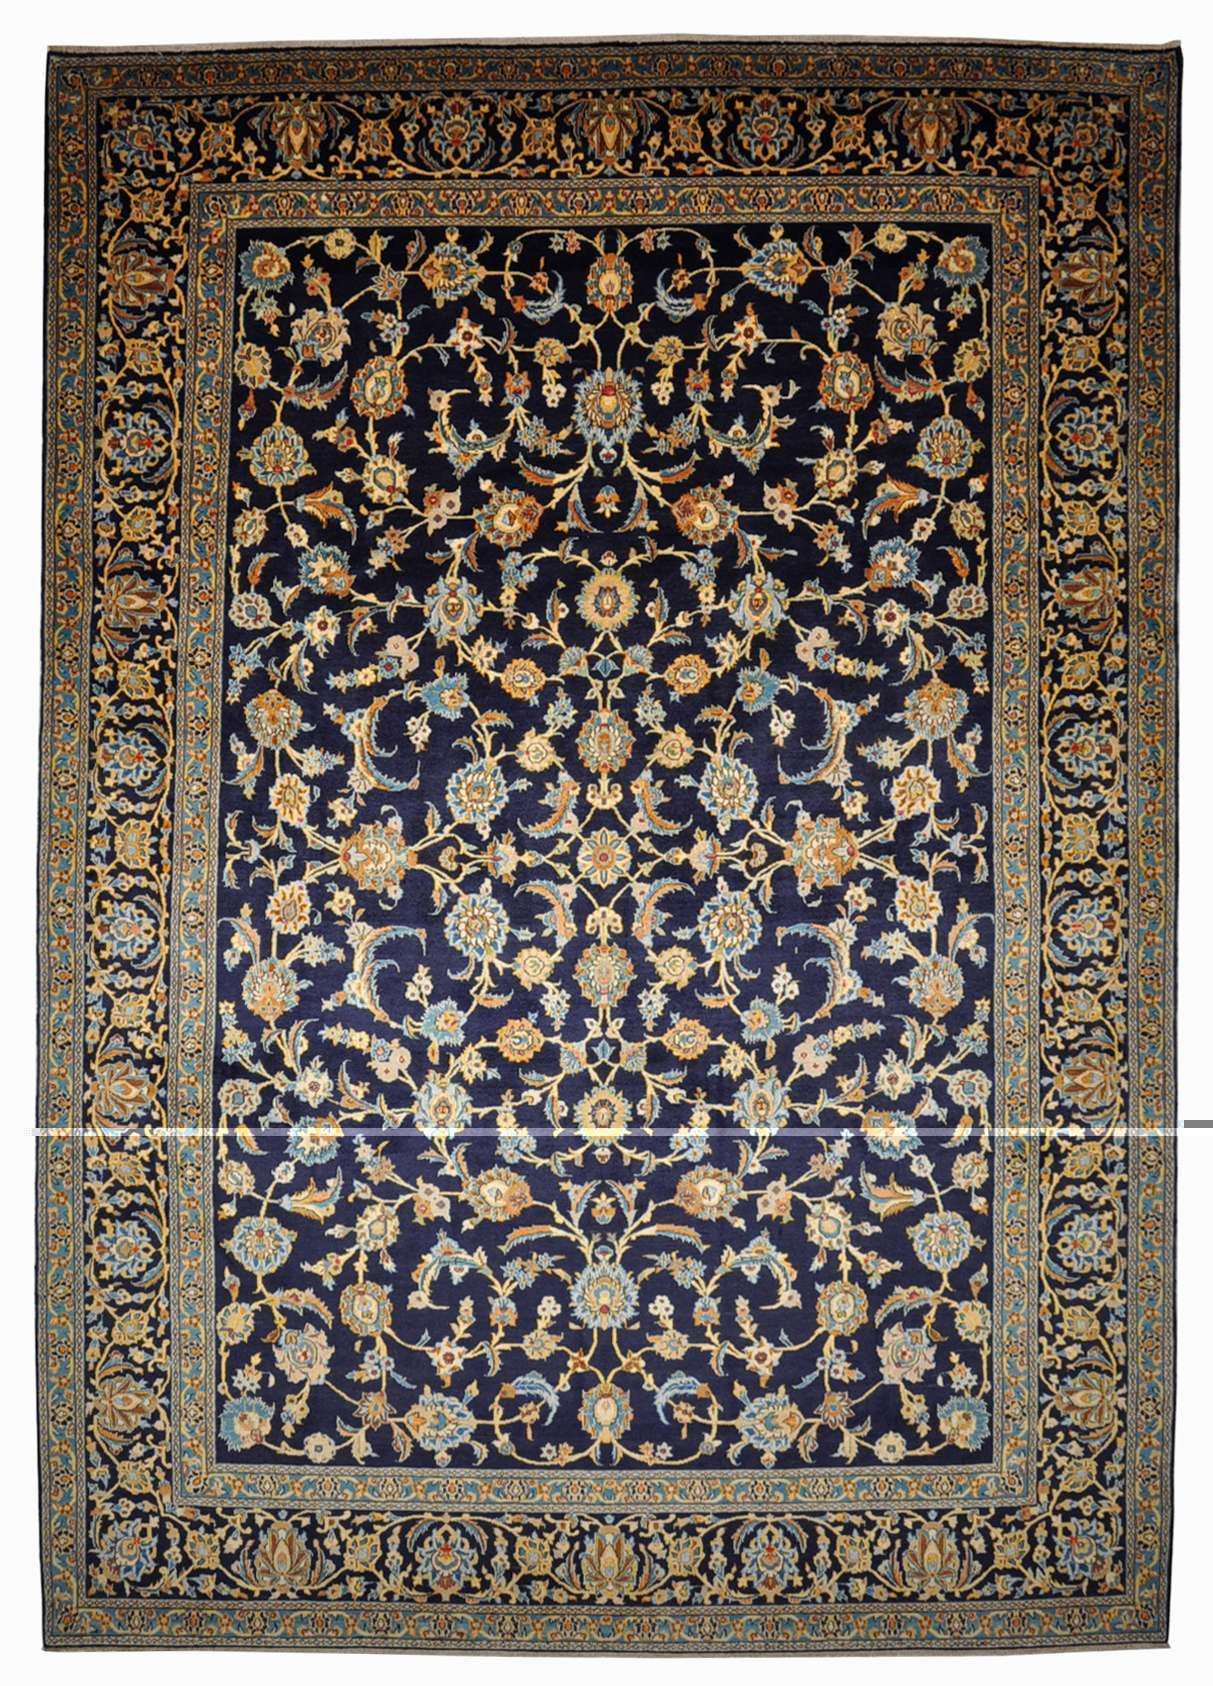 Kashan Teppich 385x269 Kashan Rug Antique Carpets Traditional